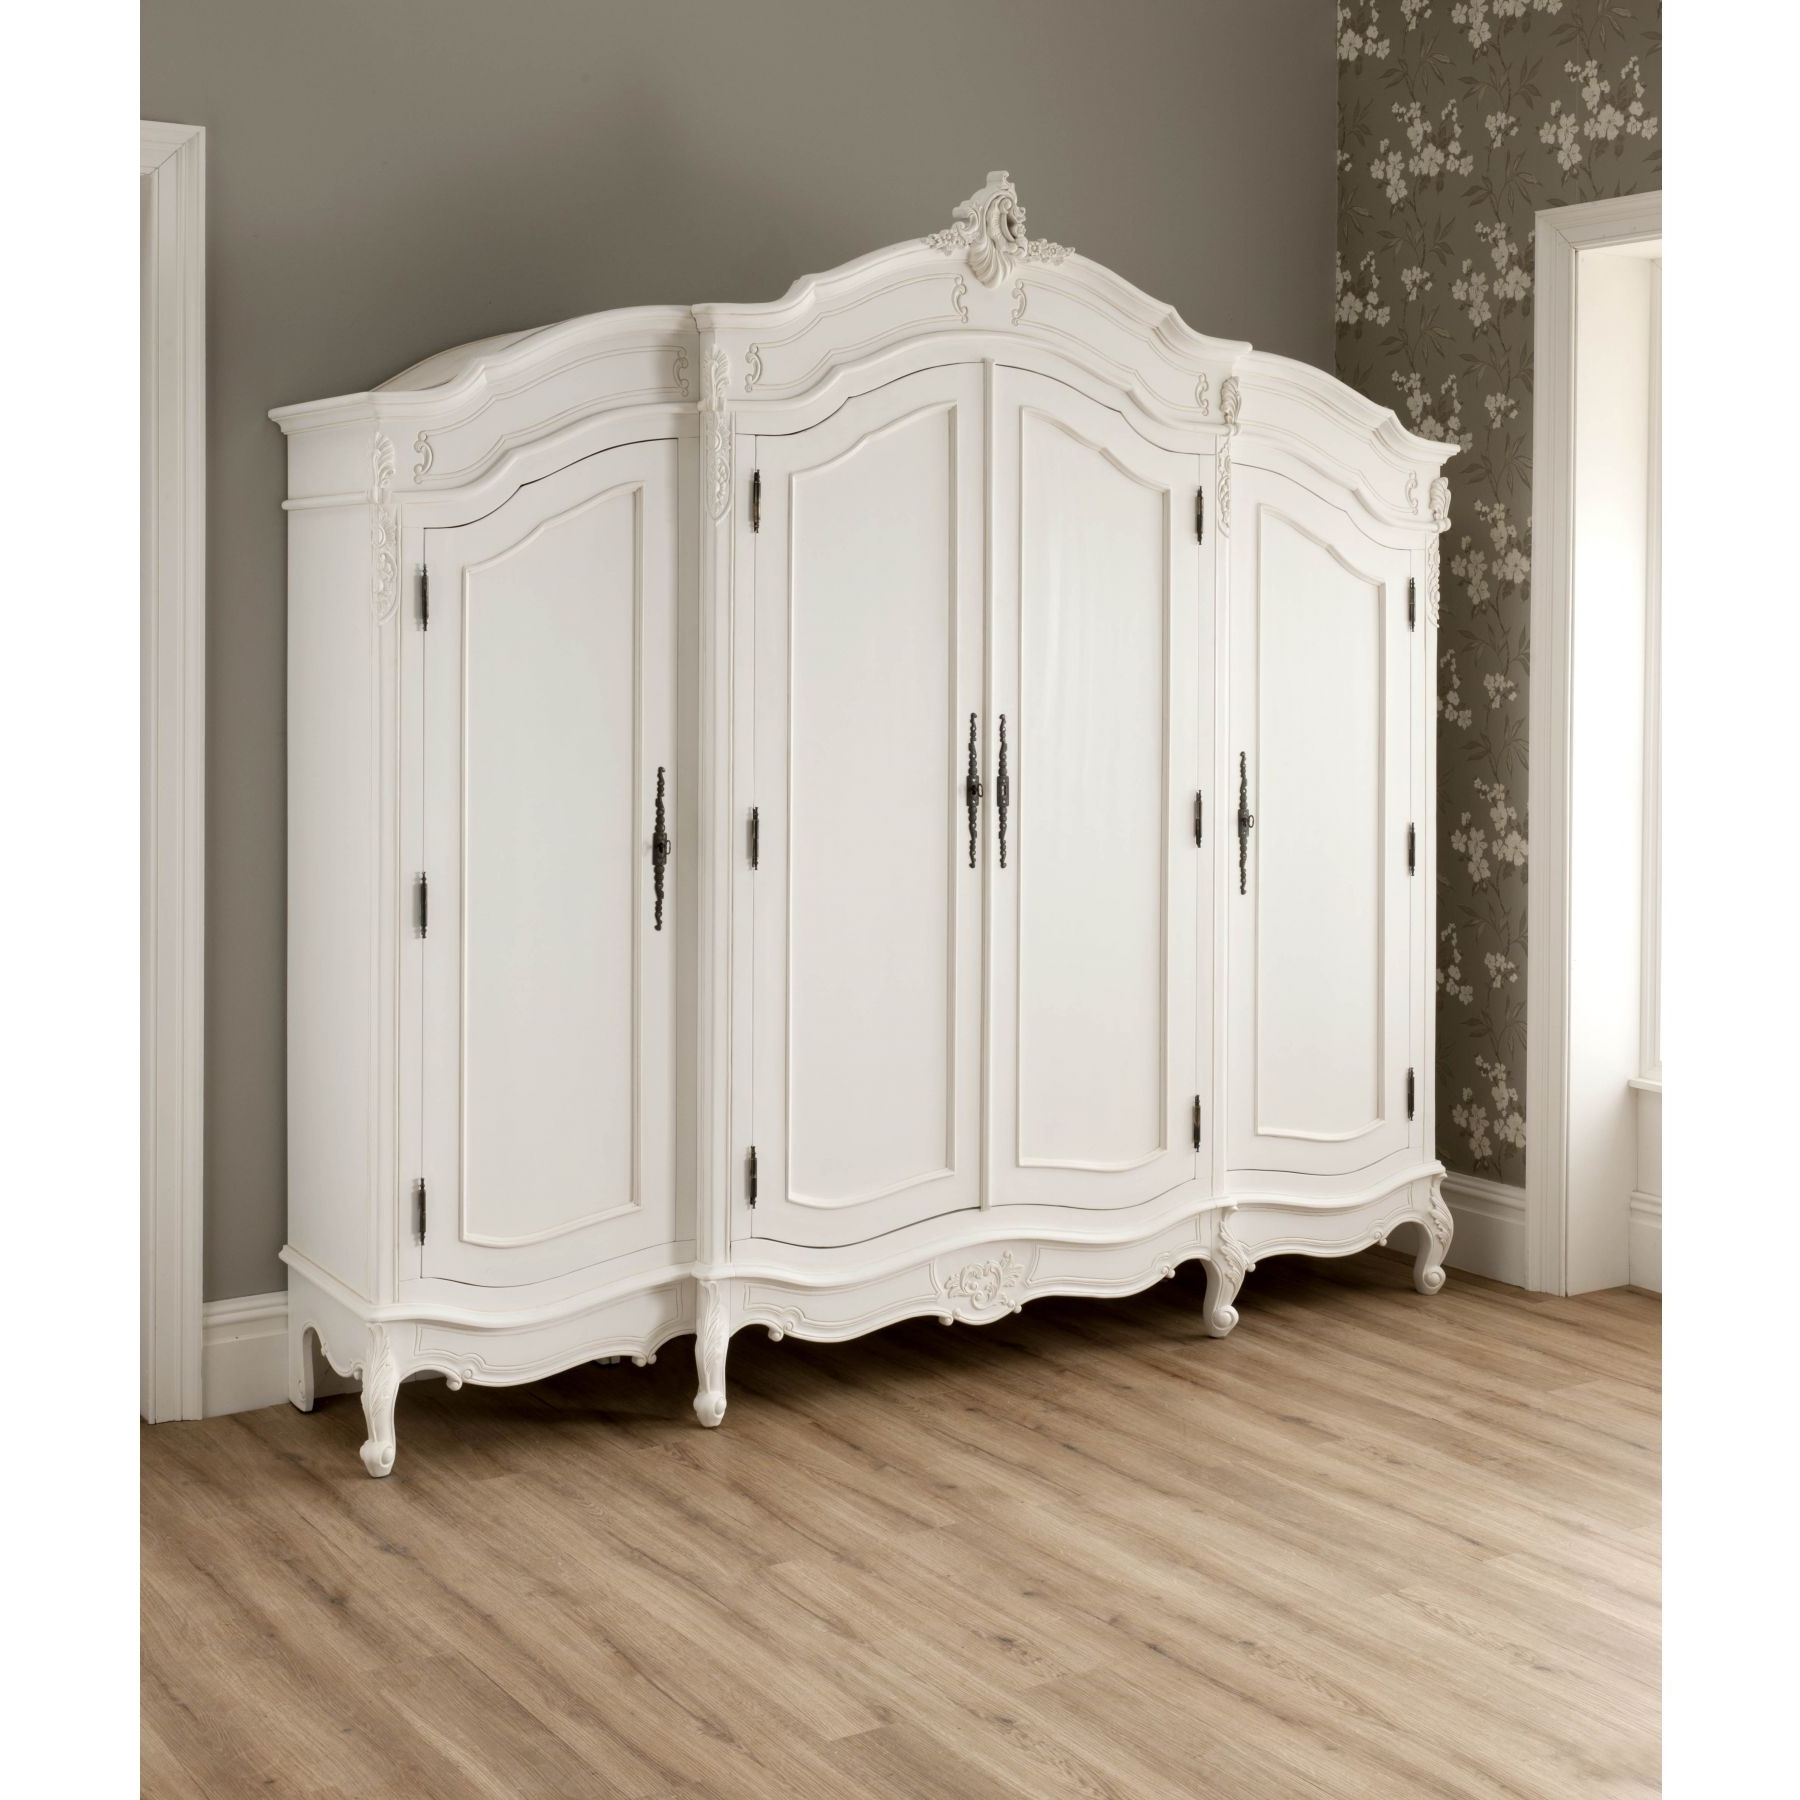 French Style White Wardrobes In Latest La Rochelle Antique French Wardrobe Working Well Alongside Our (View 3 of 15)